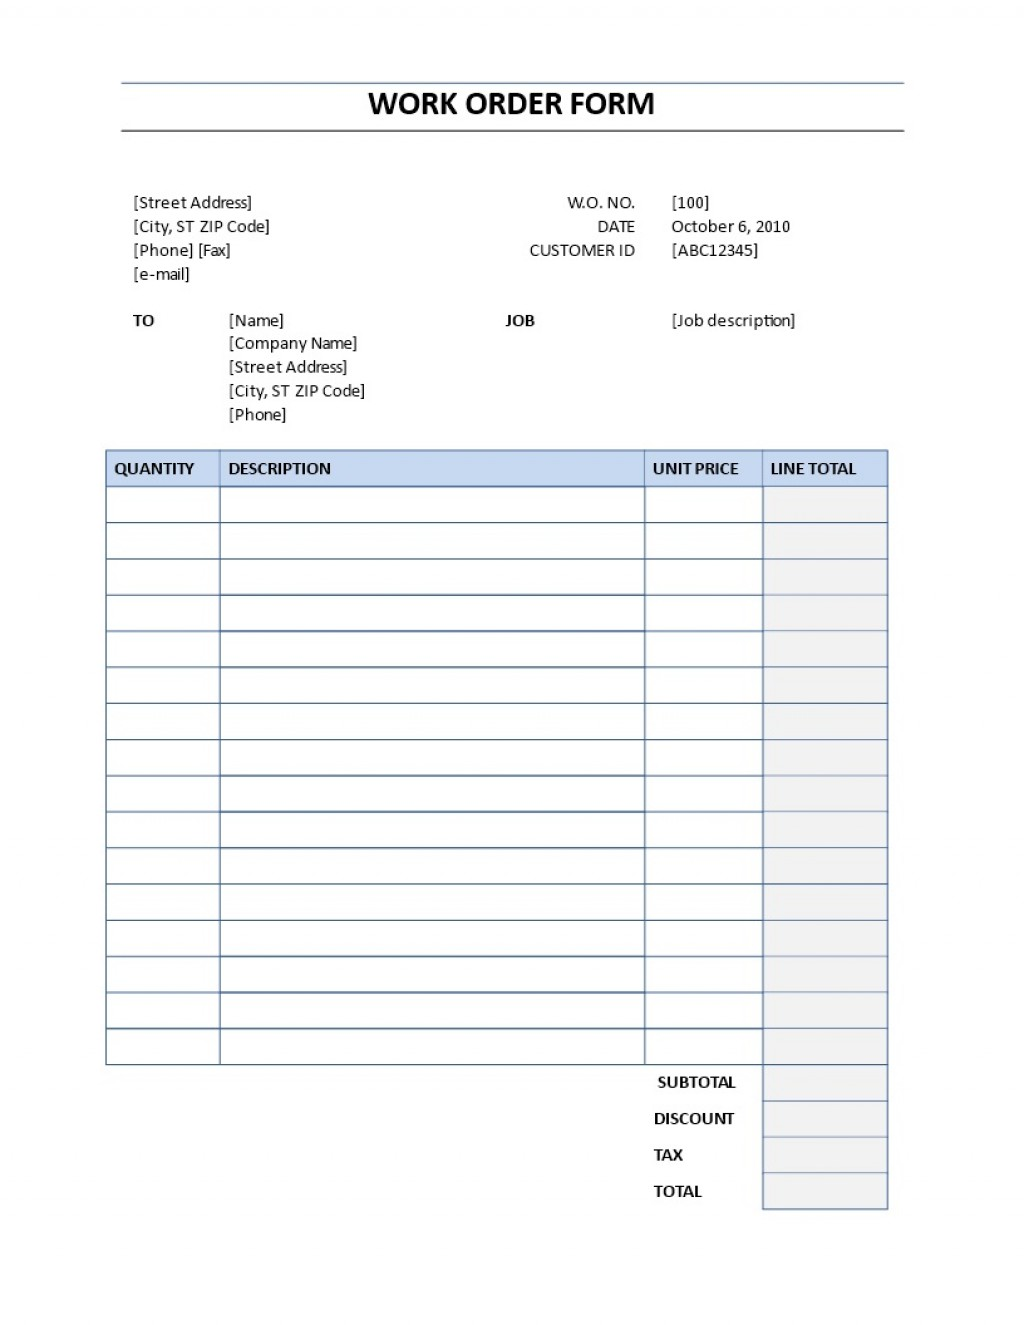 001 Unbelievable Work Order Form Template High Definition  Request Excel Advertising Company FreeLarge